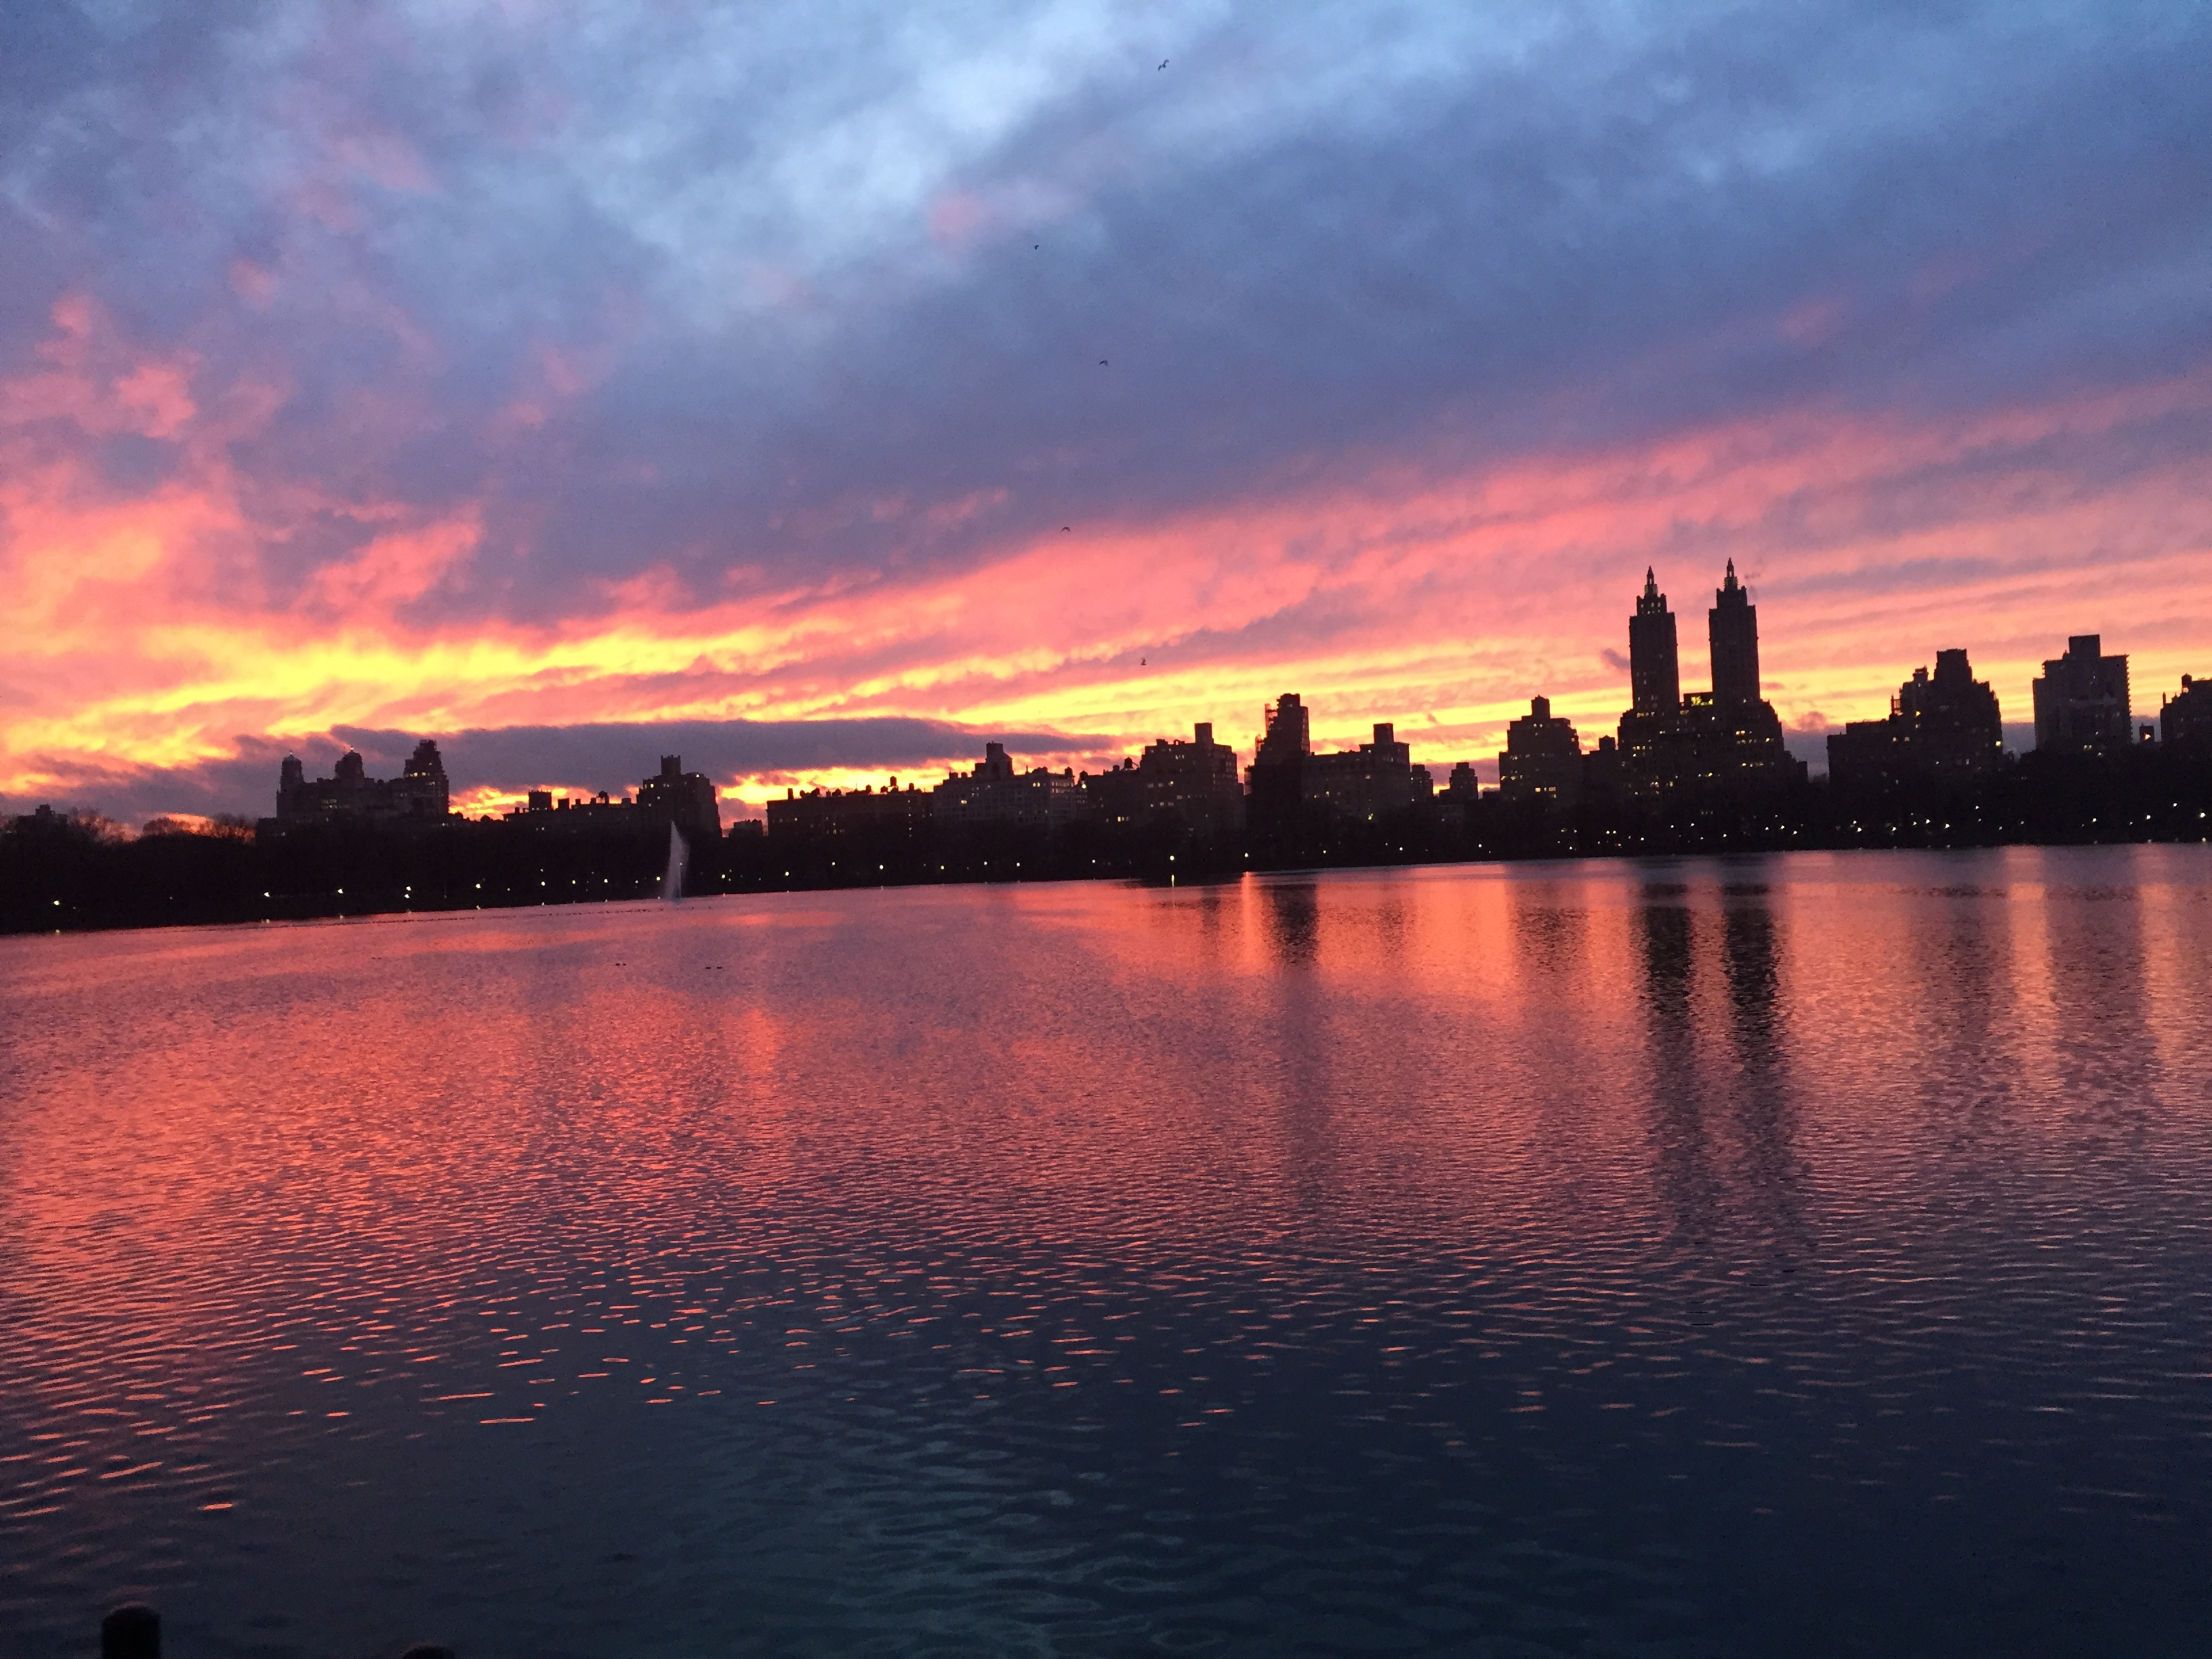 Sunset in Central Park, Friday 14th February 2020